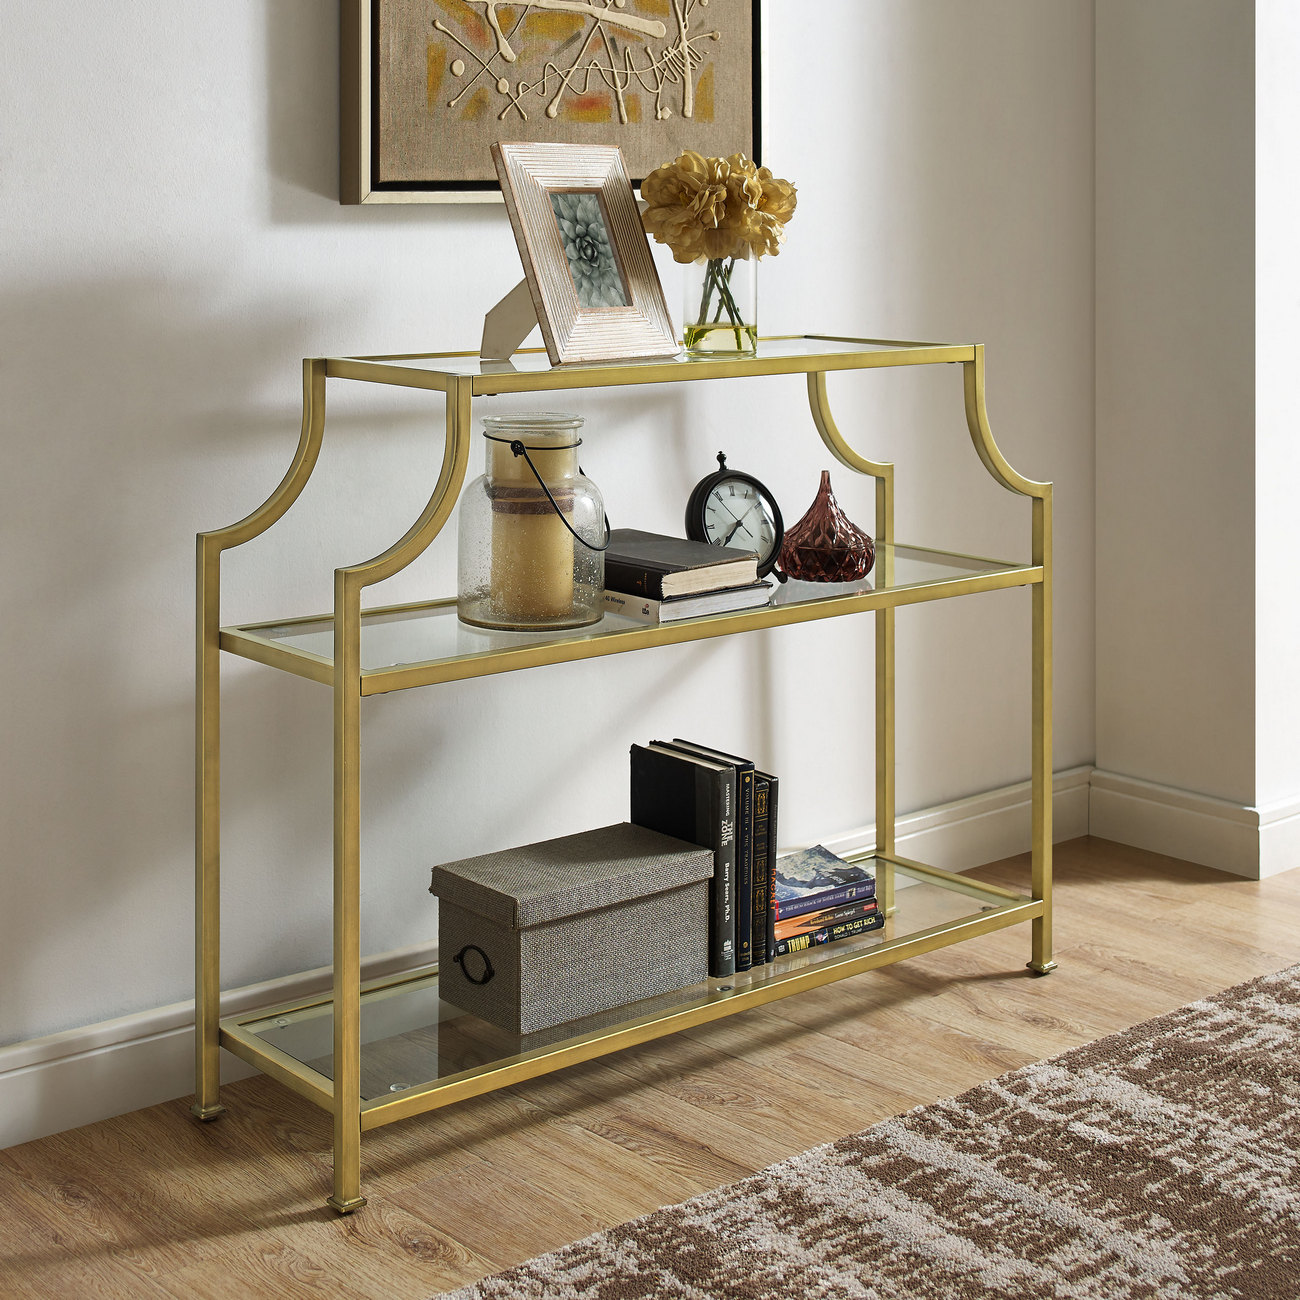 Aimee Glass Console Table - Crosley CF1307-GL